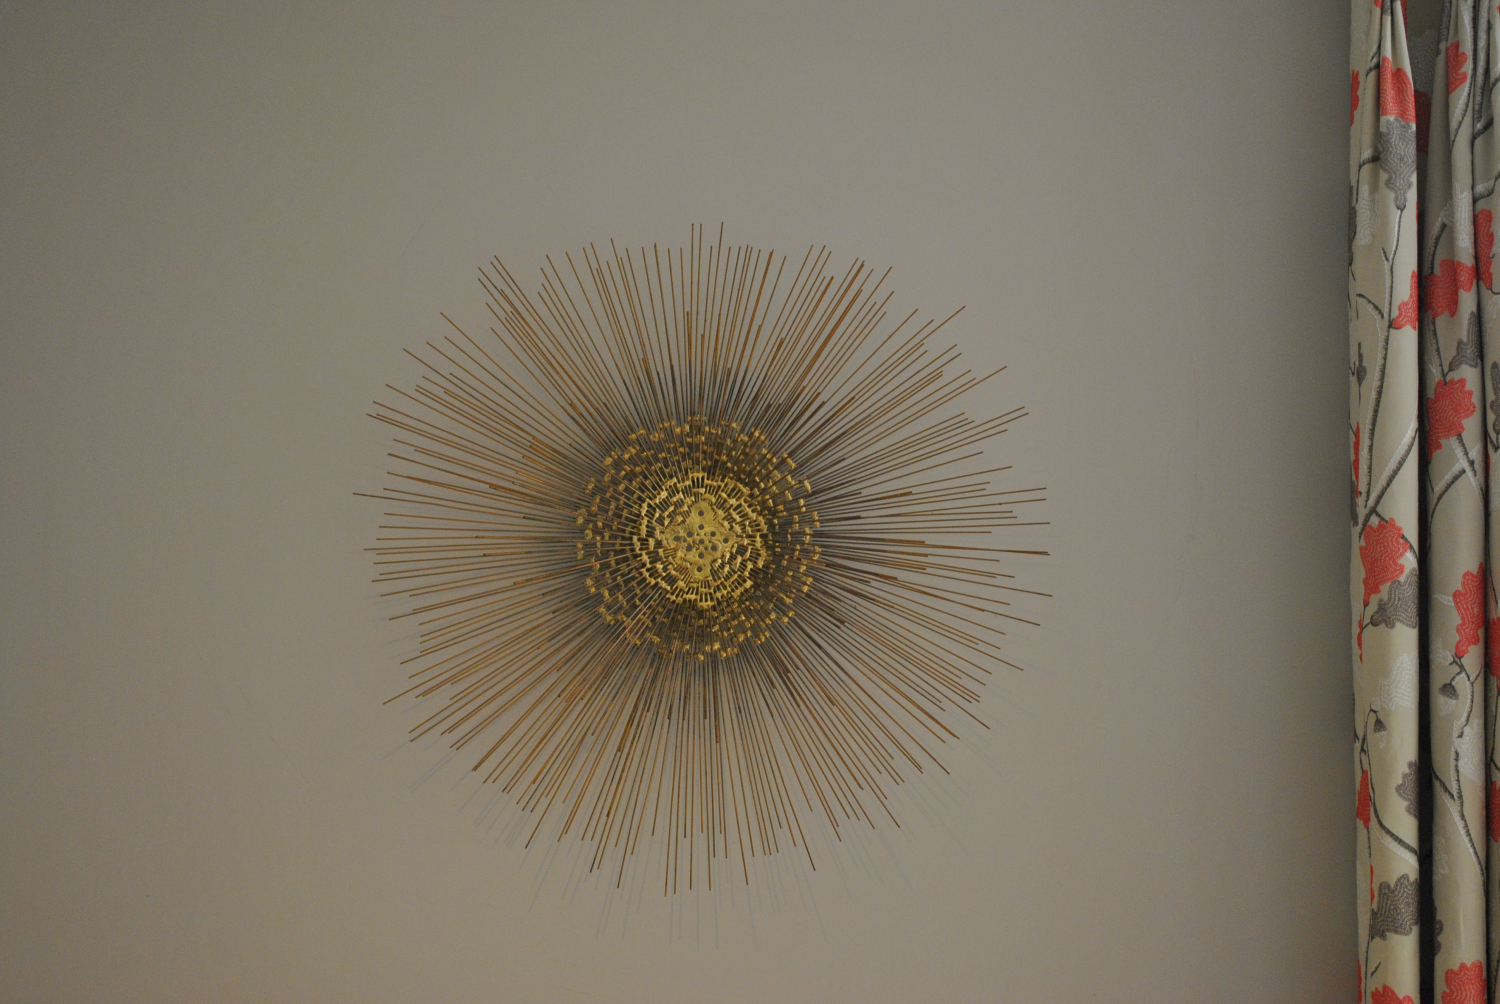 Sunburst Wall Sculpture